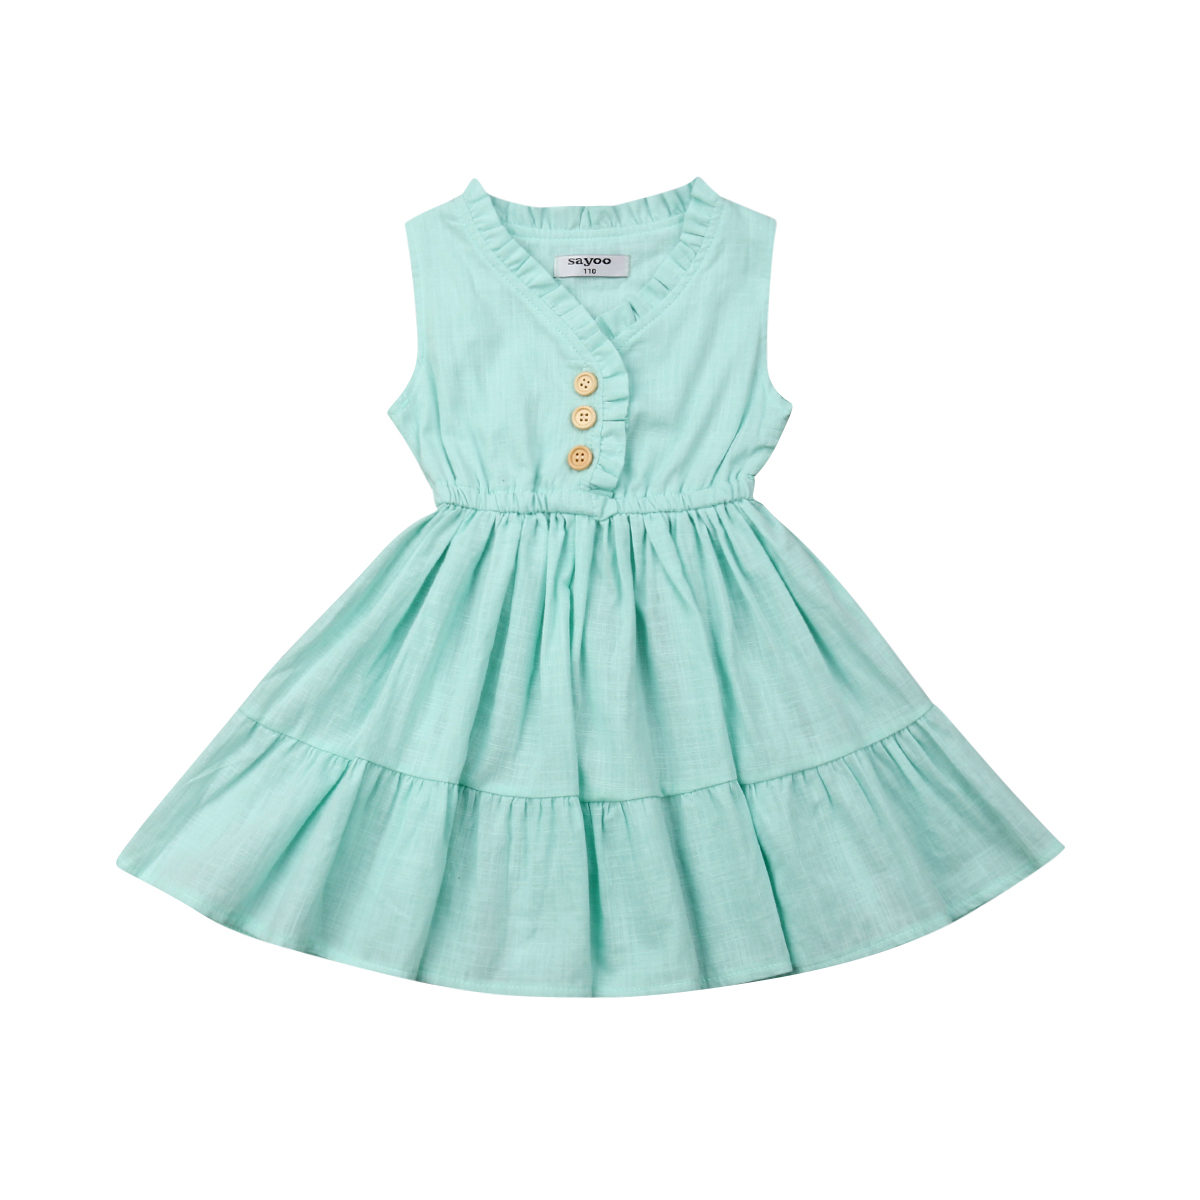 2019 Newest Style Spring Summer Newborn Kids Baby Girl Sleeveless Ruffles Adorable Dress Party Holiday Sundress 3-6years